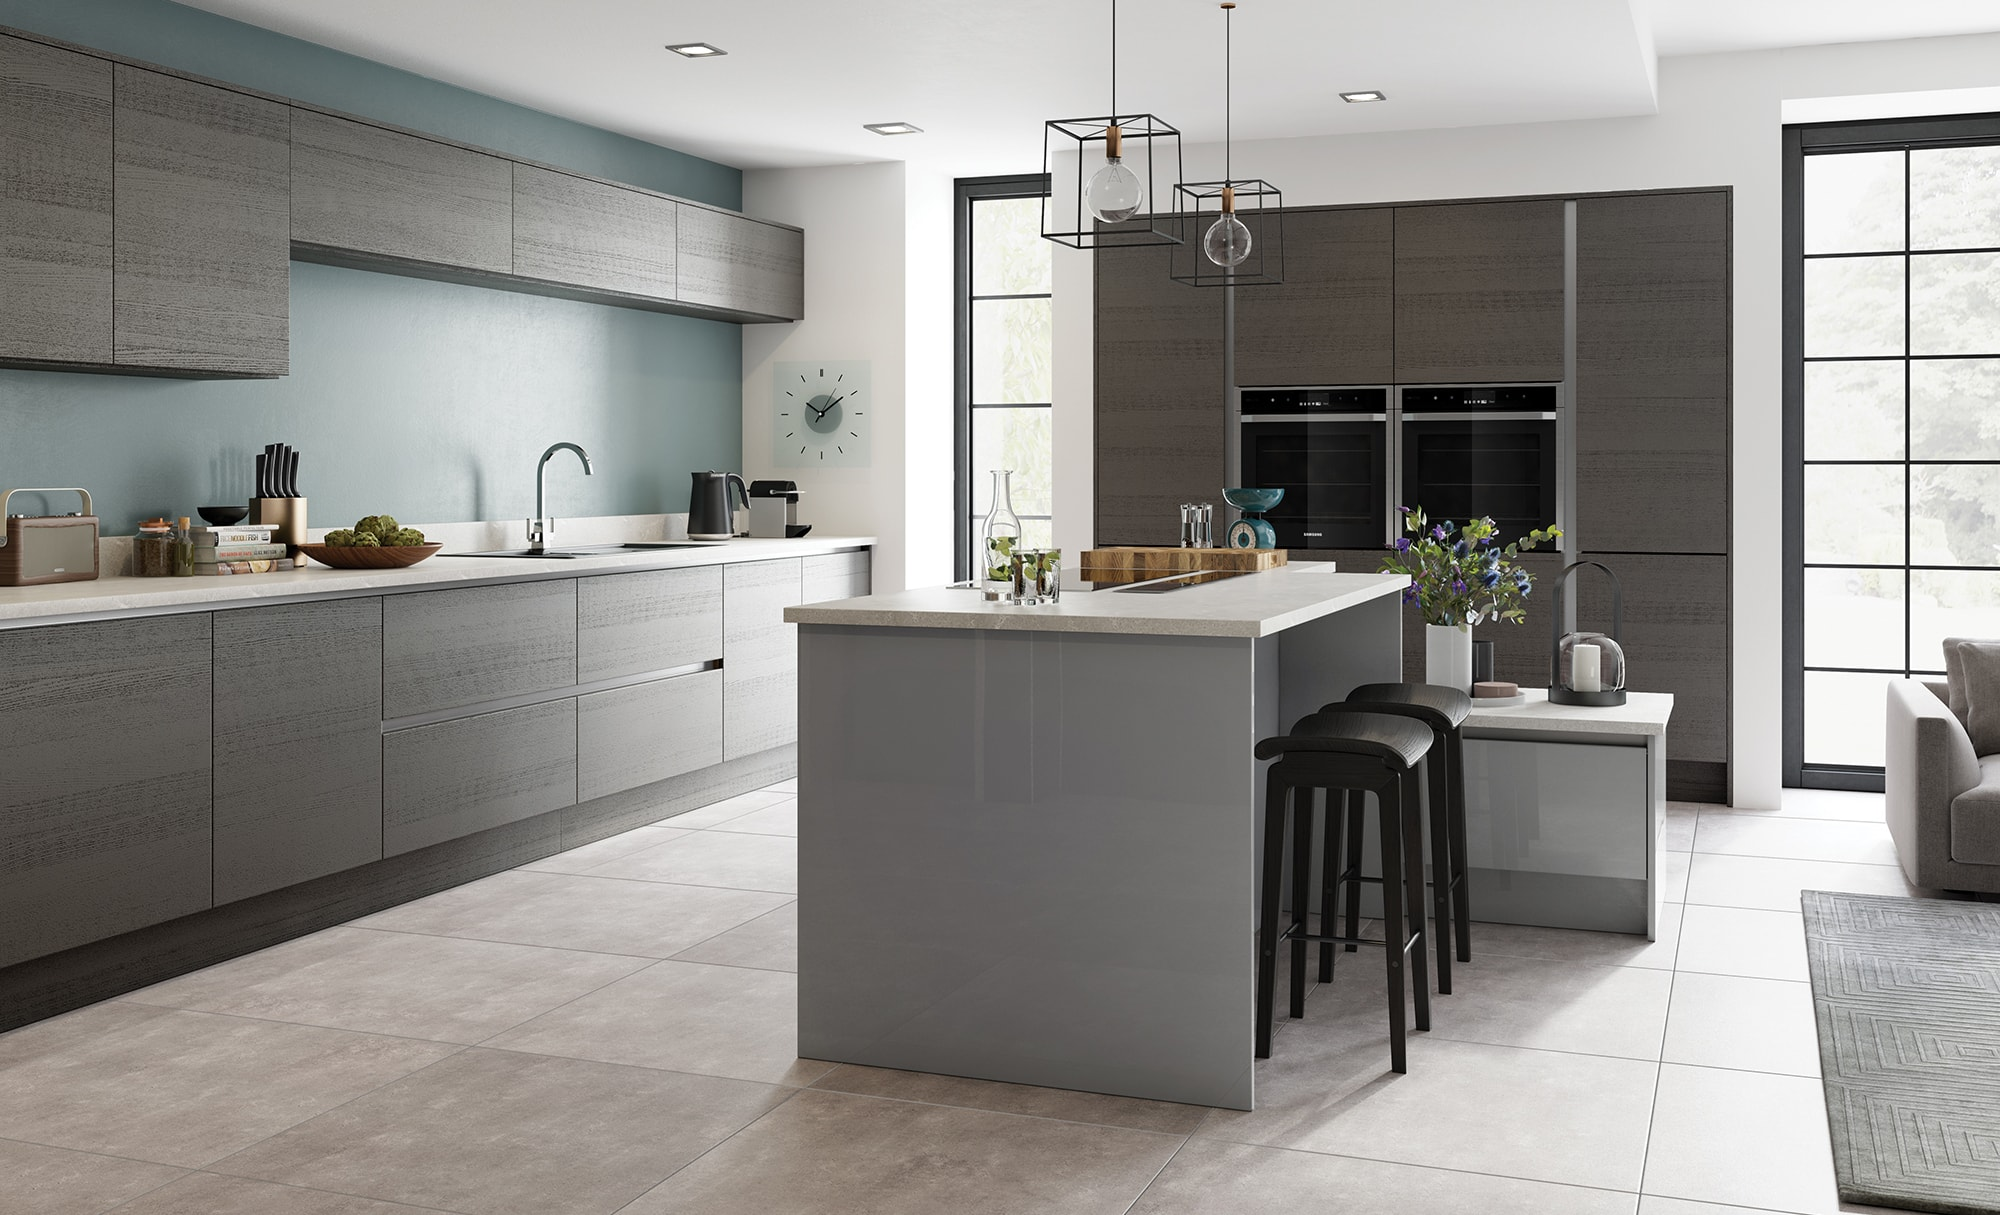 Tavola Anthracite & Zola Gloss Dust Grey, Tavola Painted & Stained is a slab door manufactured from PEFC furniture grade chipboard, over veneered on both sides and edged in 1.6mm solid wood.